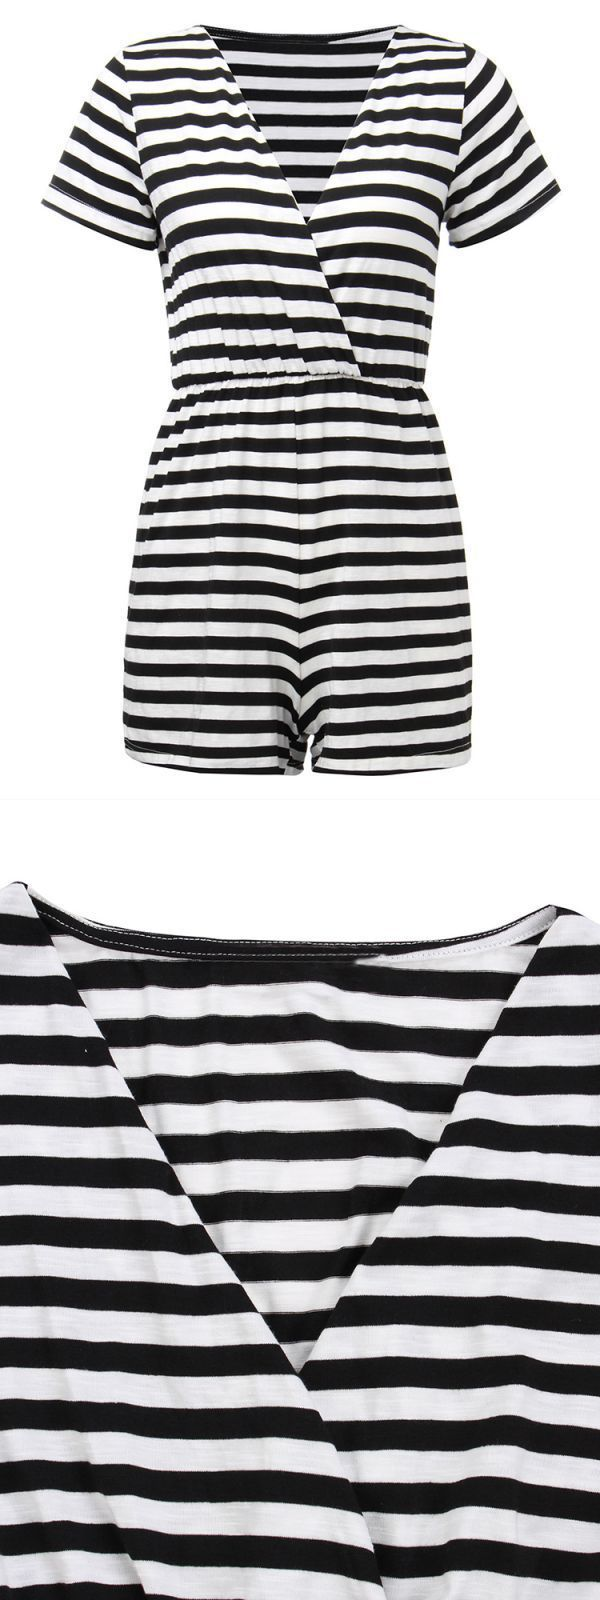 Jumpsuits playsuits river island casual women v neck stripe short sleeve romper wrap jumpsuit #cheap #jumpsuits #and #playsuits #uk #jumpsuits #and #playsuits #new #look #jumpsuits #or #playsuits